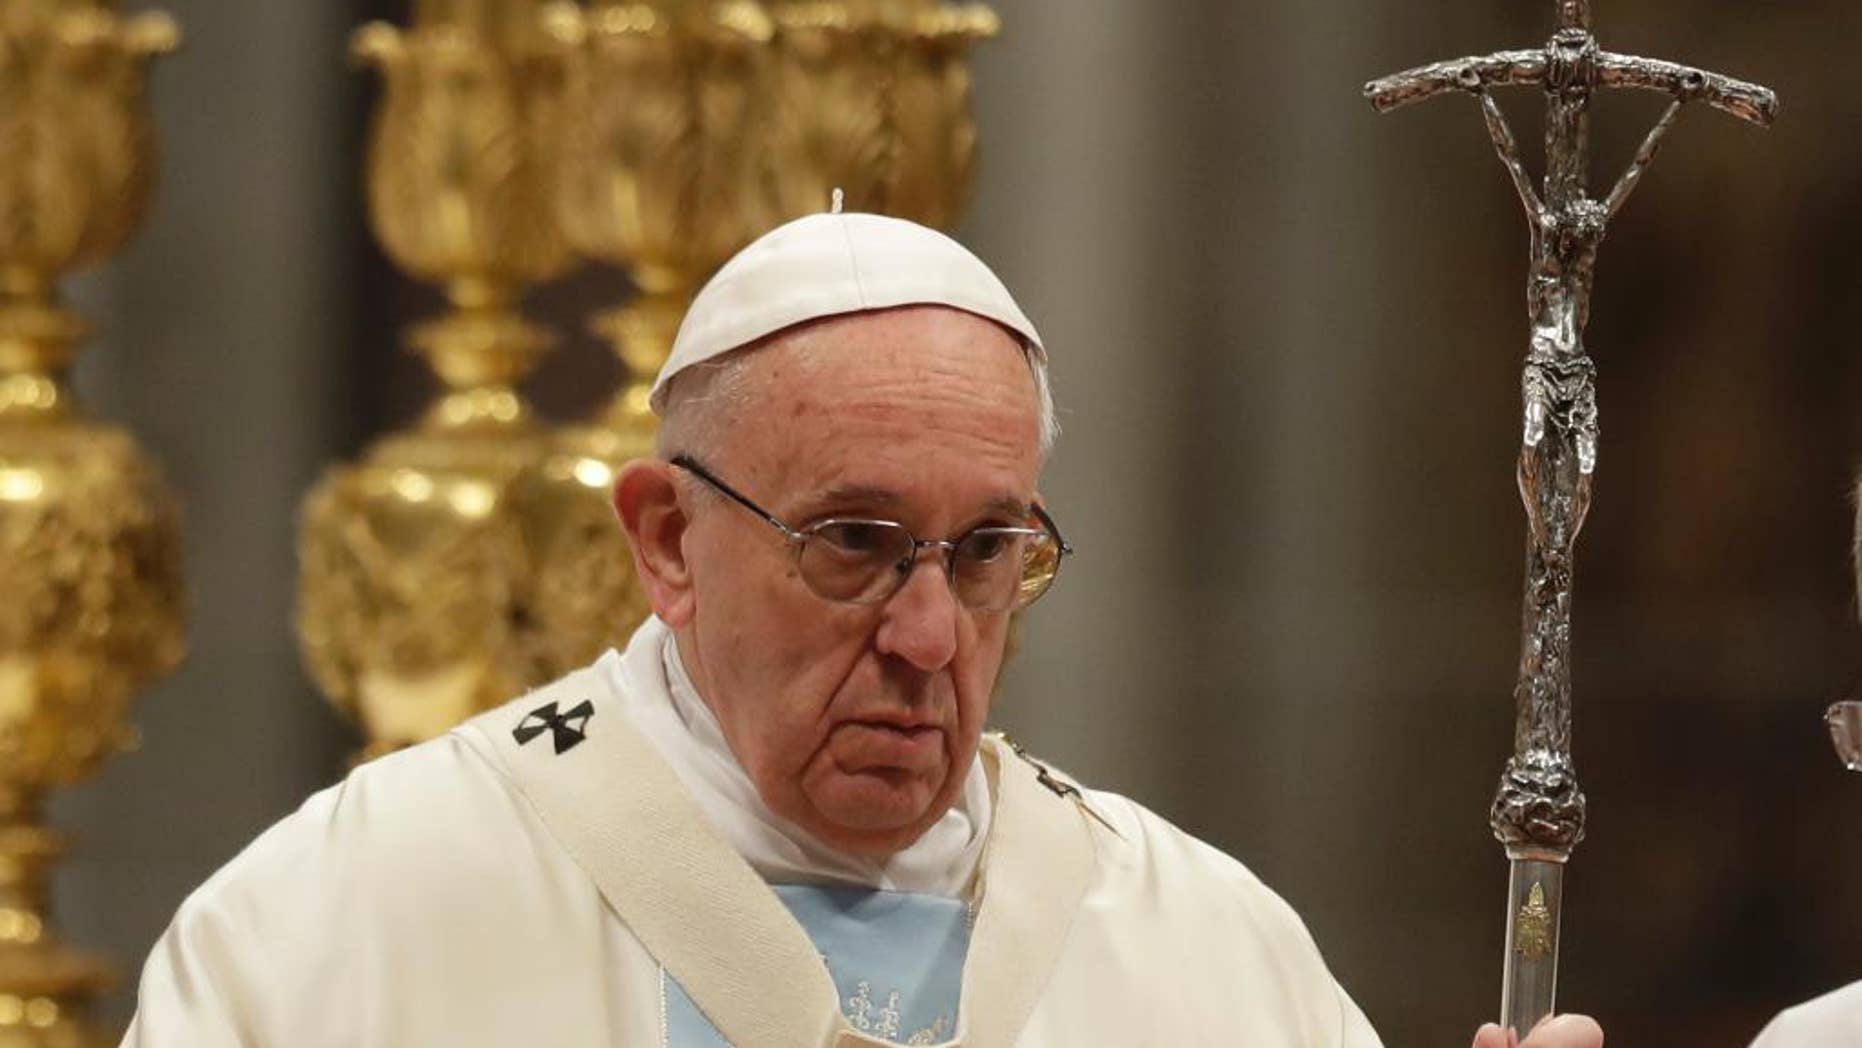 Pope Francis celebrates a new year's Mass in St. Peter's Basilica at the Vatican, Sunday, Jan. 1, 2017. (AP Photo/Andrew Medichini)